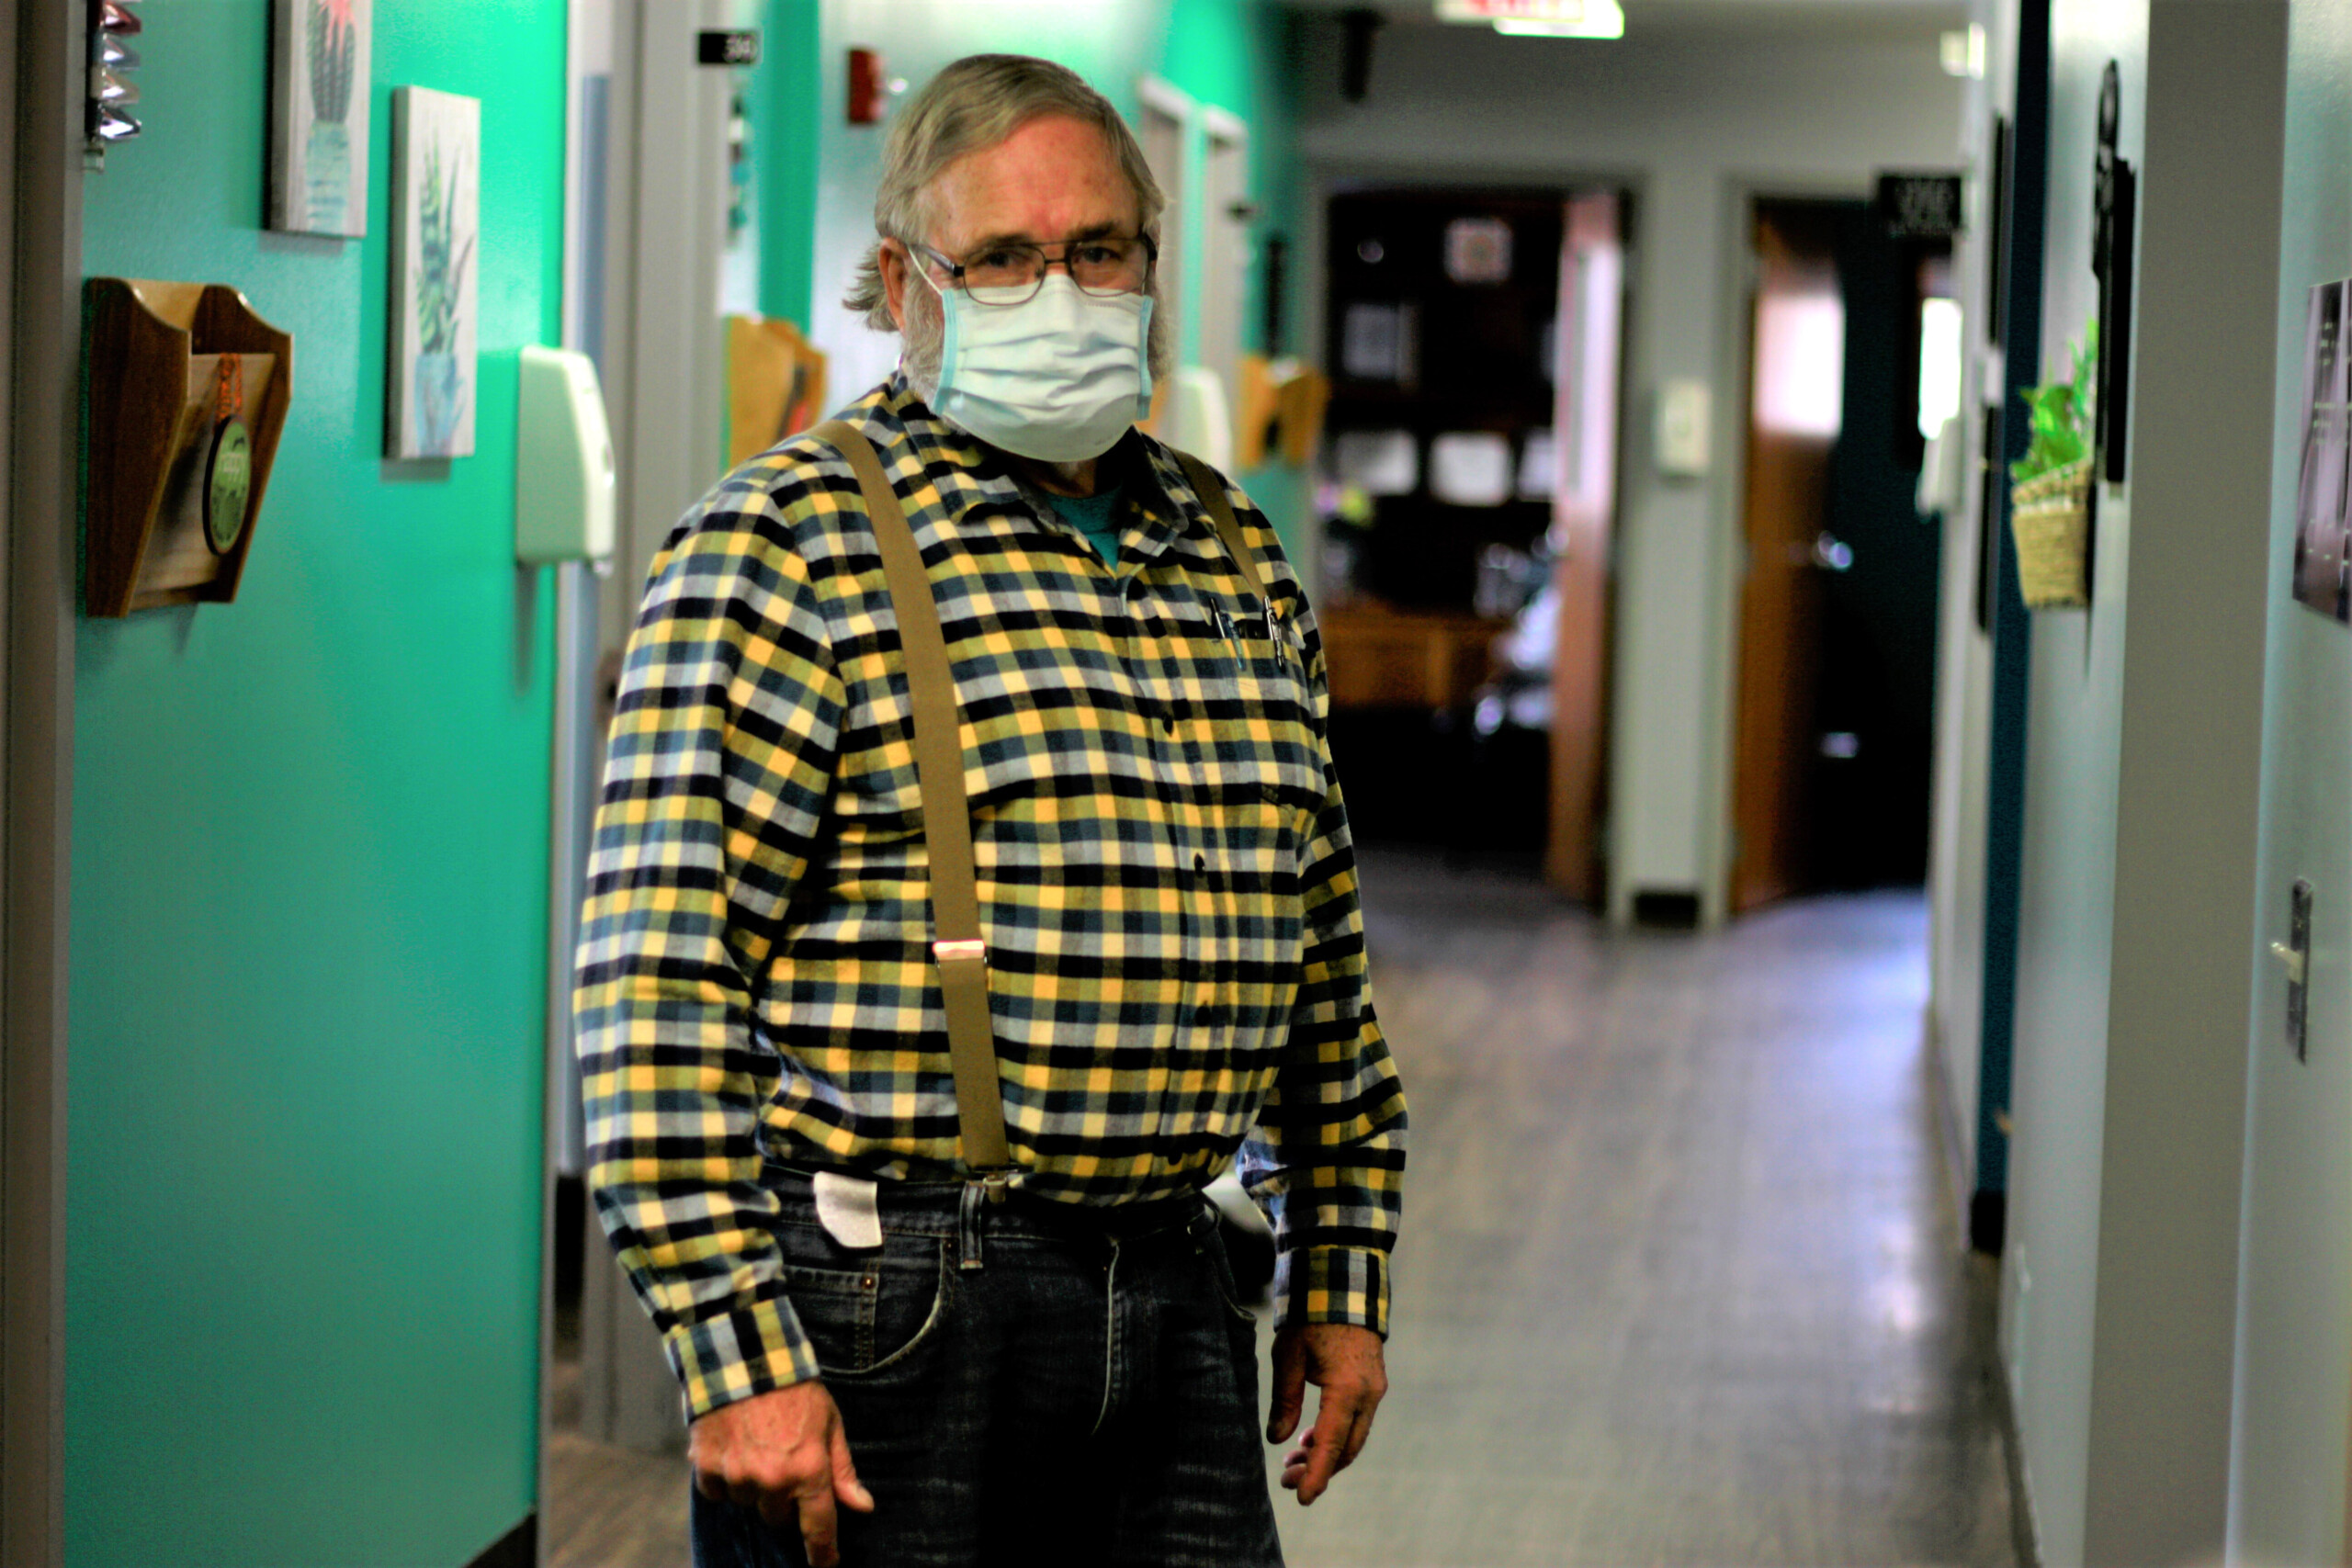 Midwest Engineers Christmas Party 2020 Rural Midwest hospitals struggling to handle virus surge   WISH TV